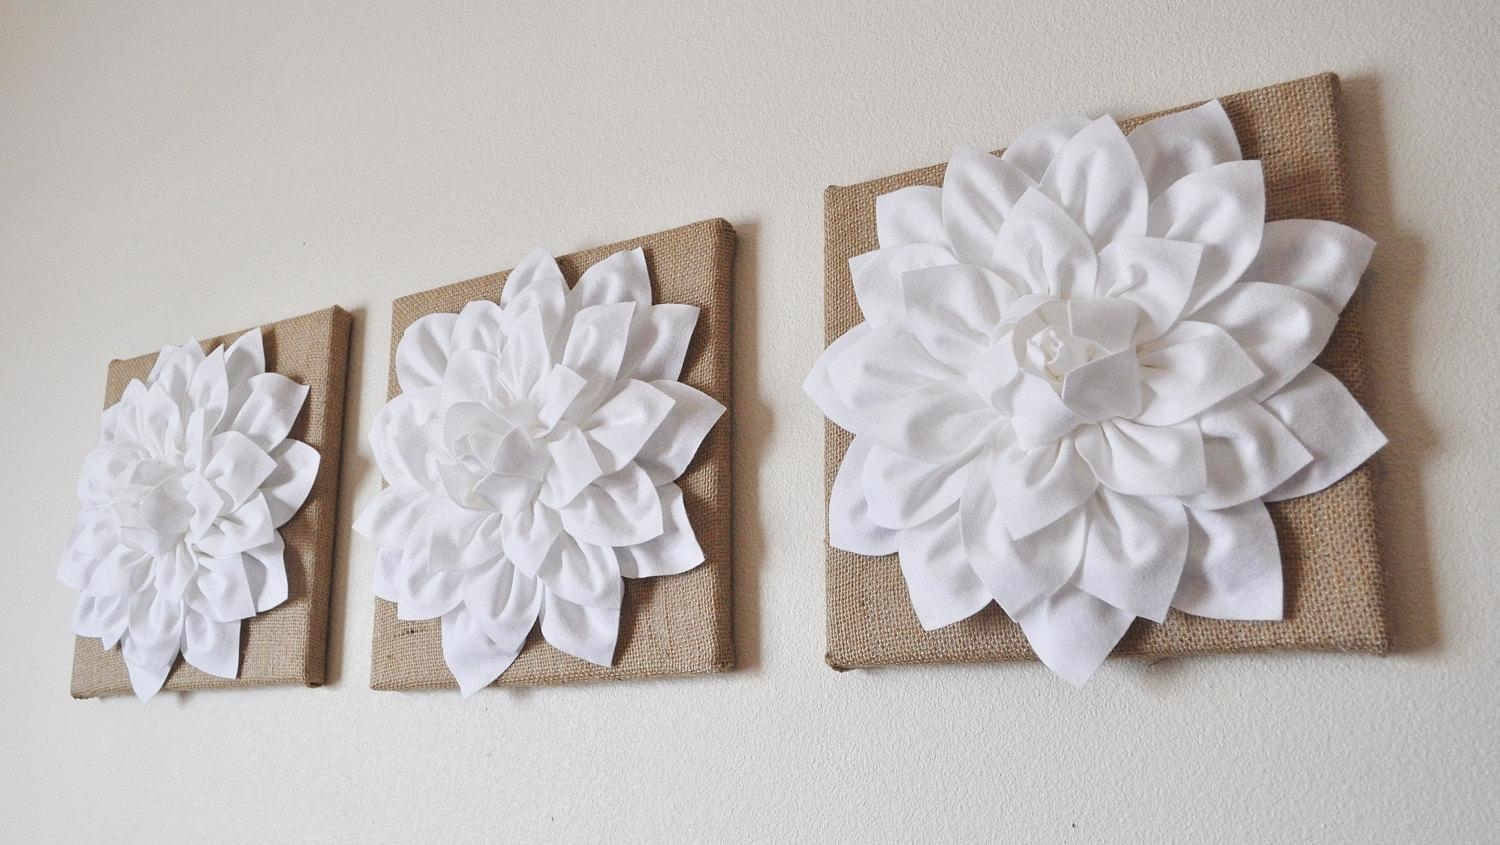 Large Wall Art 14 X 14 Burlap Set Of Three White Dahlias On Inside Large White Wall Art (View 5 of 21)